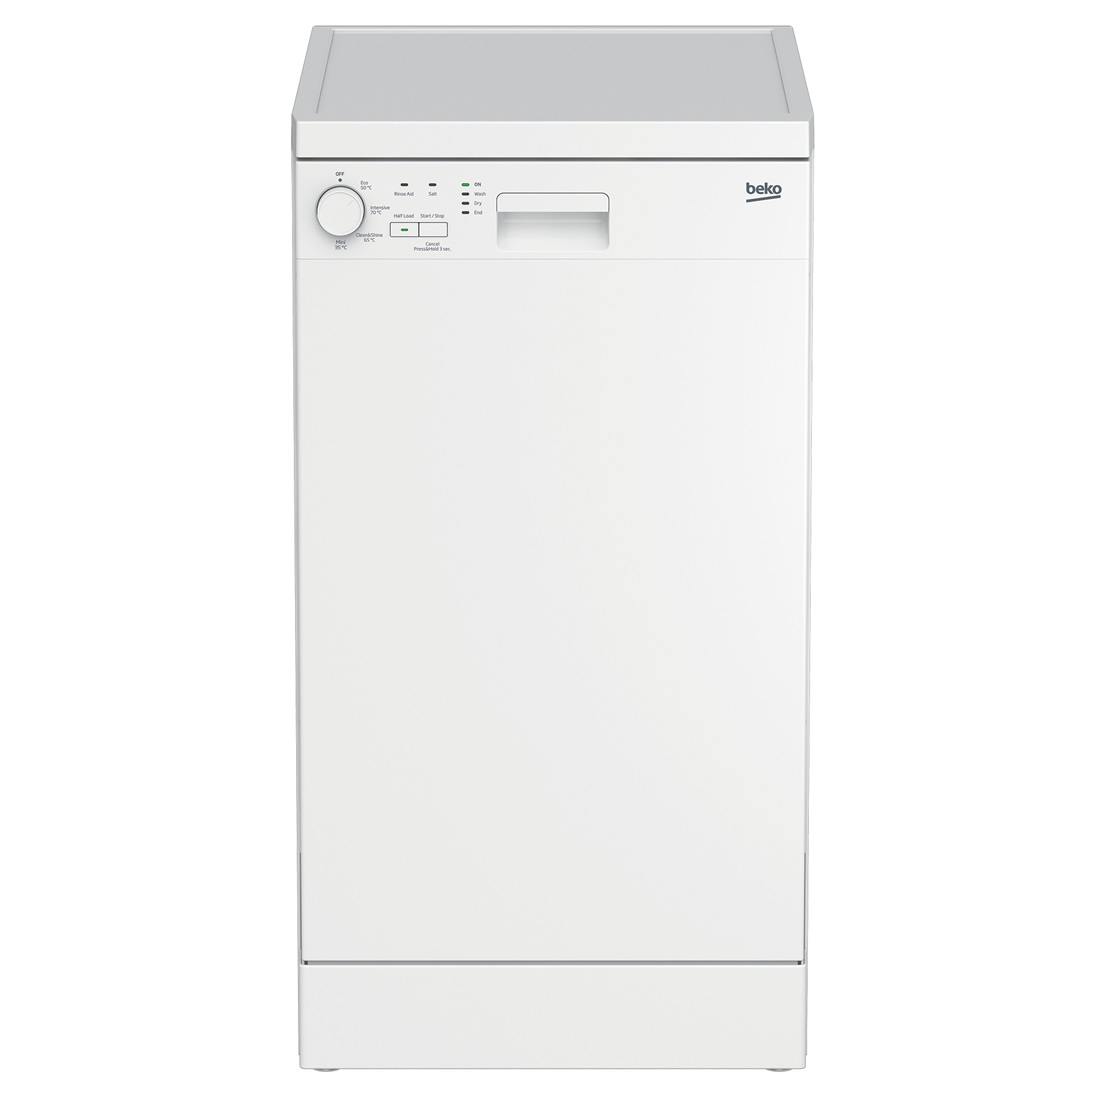 Image of 10-Place Slimline Dishwasher 4 Progs Class A+ White